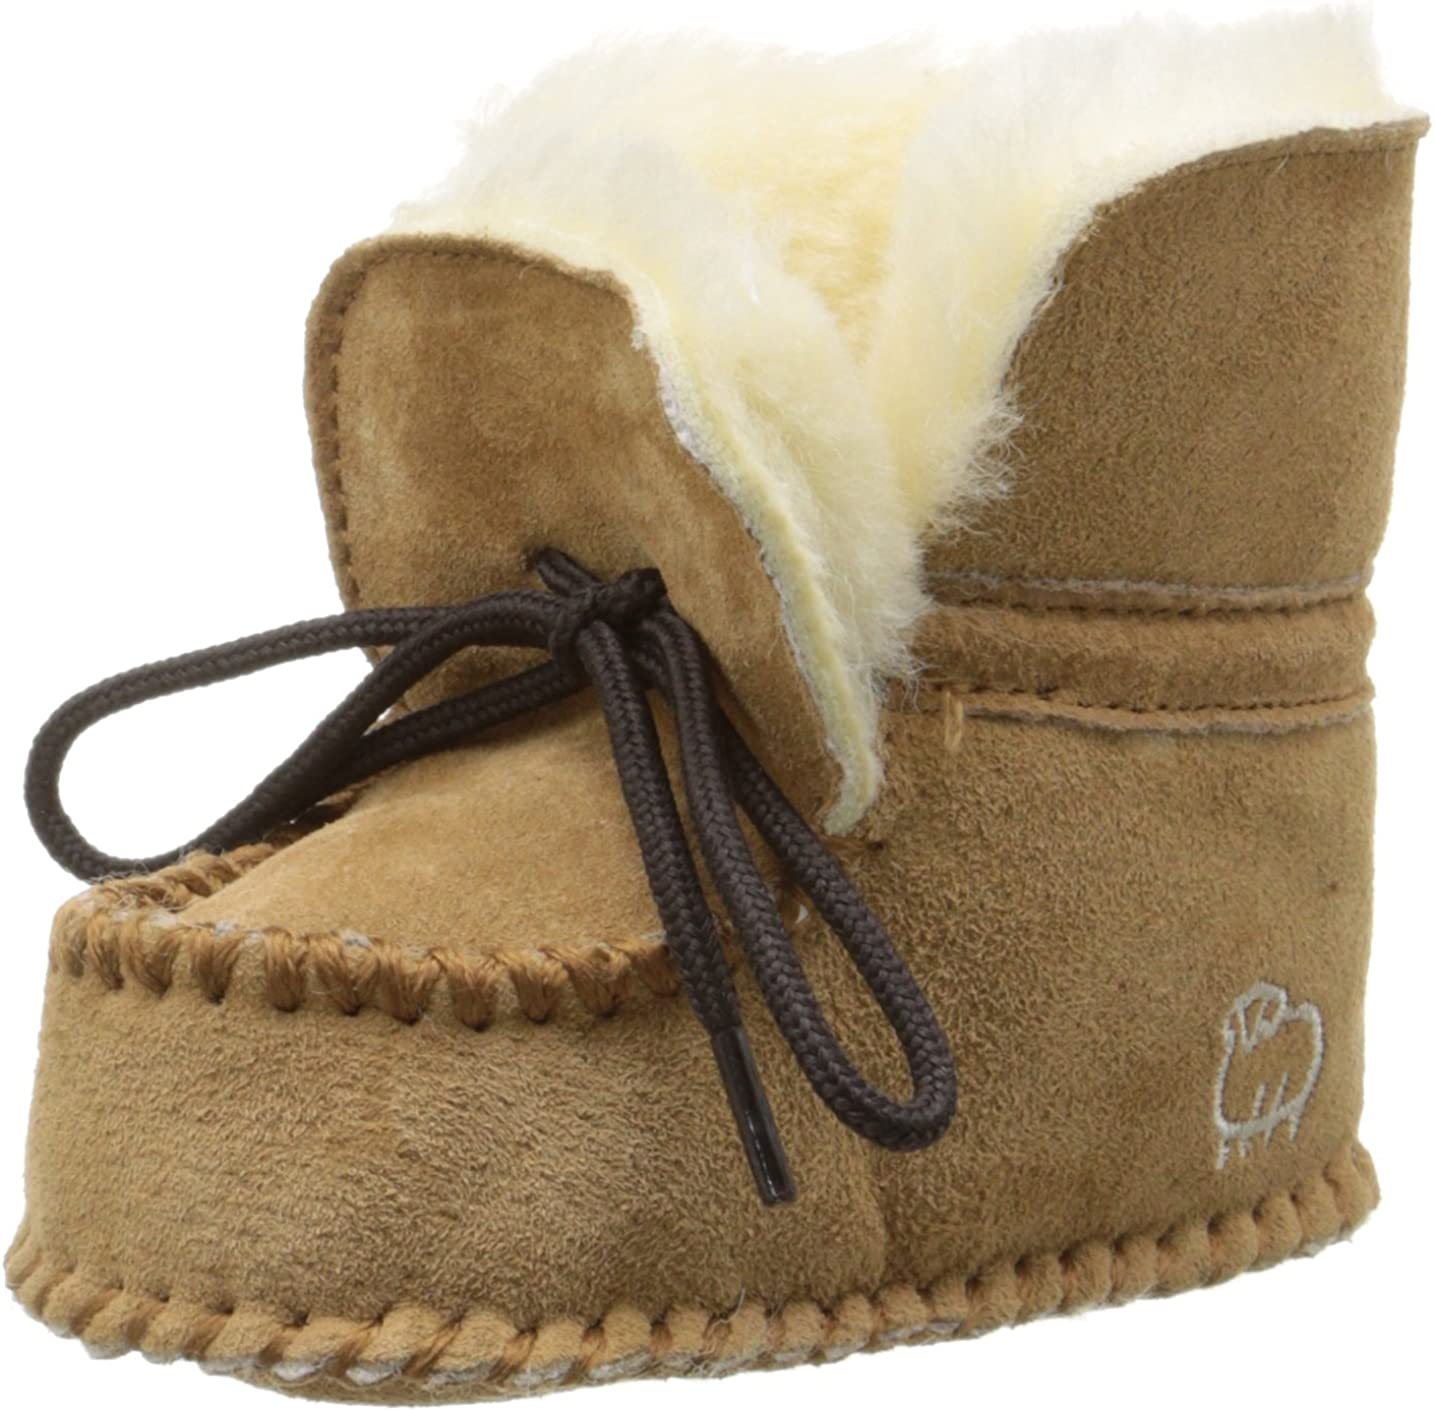 Lamo Baby Wool Lined Slip On Moccasin Toddler//Little Kid